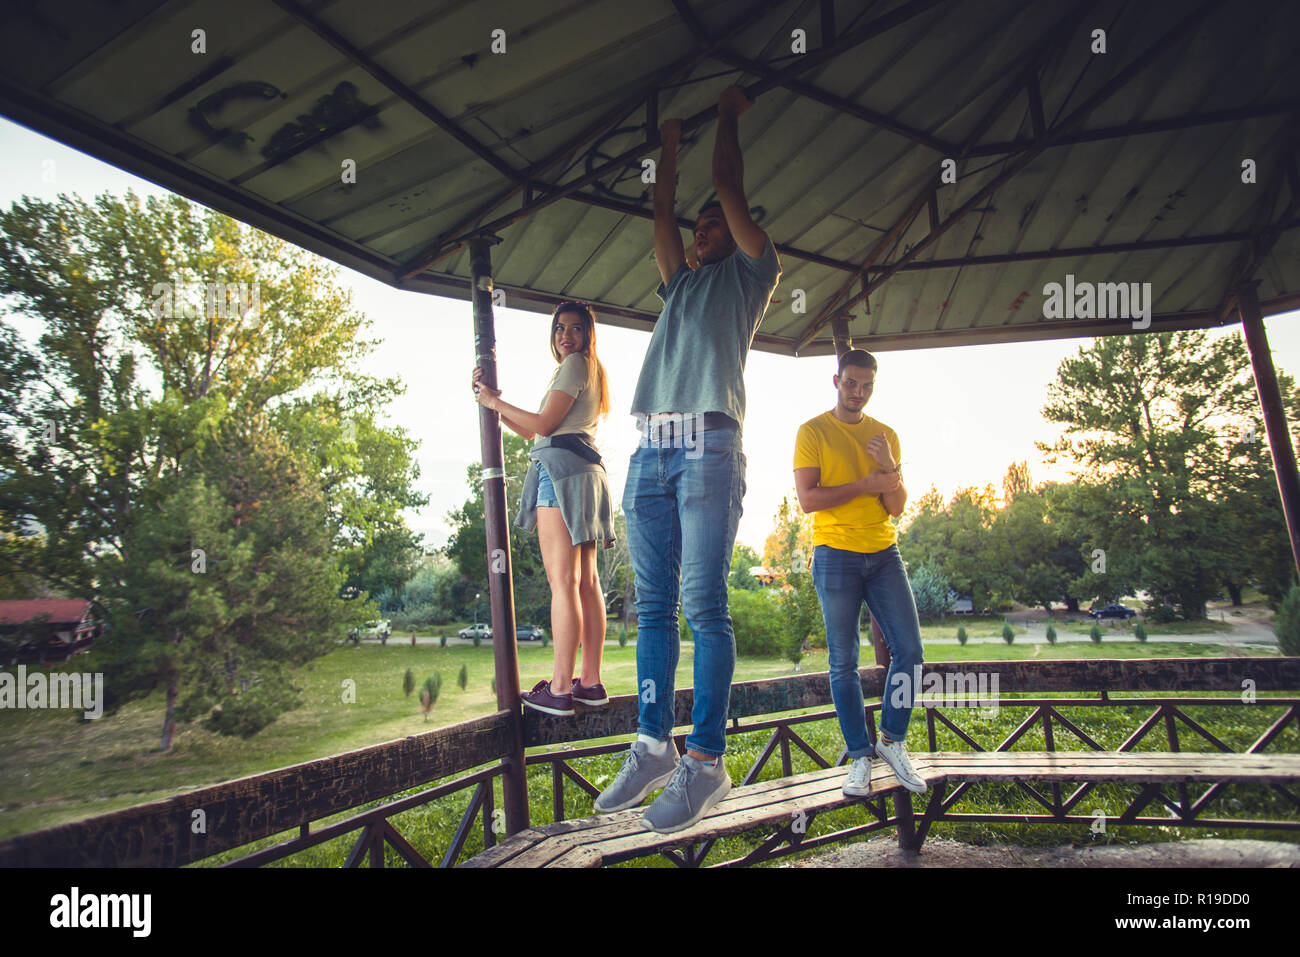 Young, careless people standing and climbing on wooden boards, having fun together - Stock Image